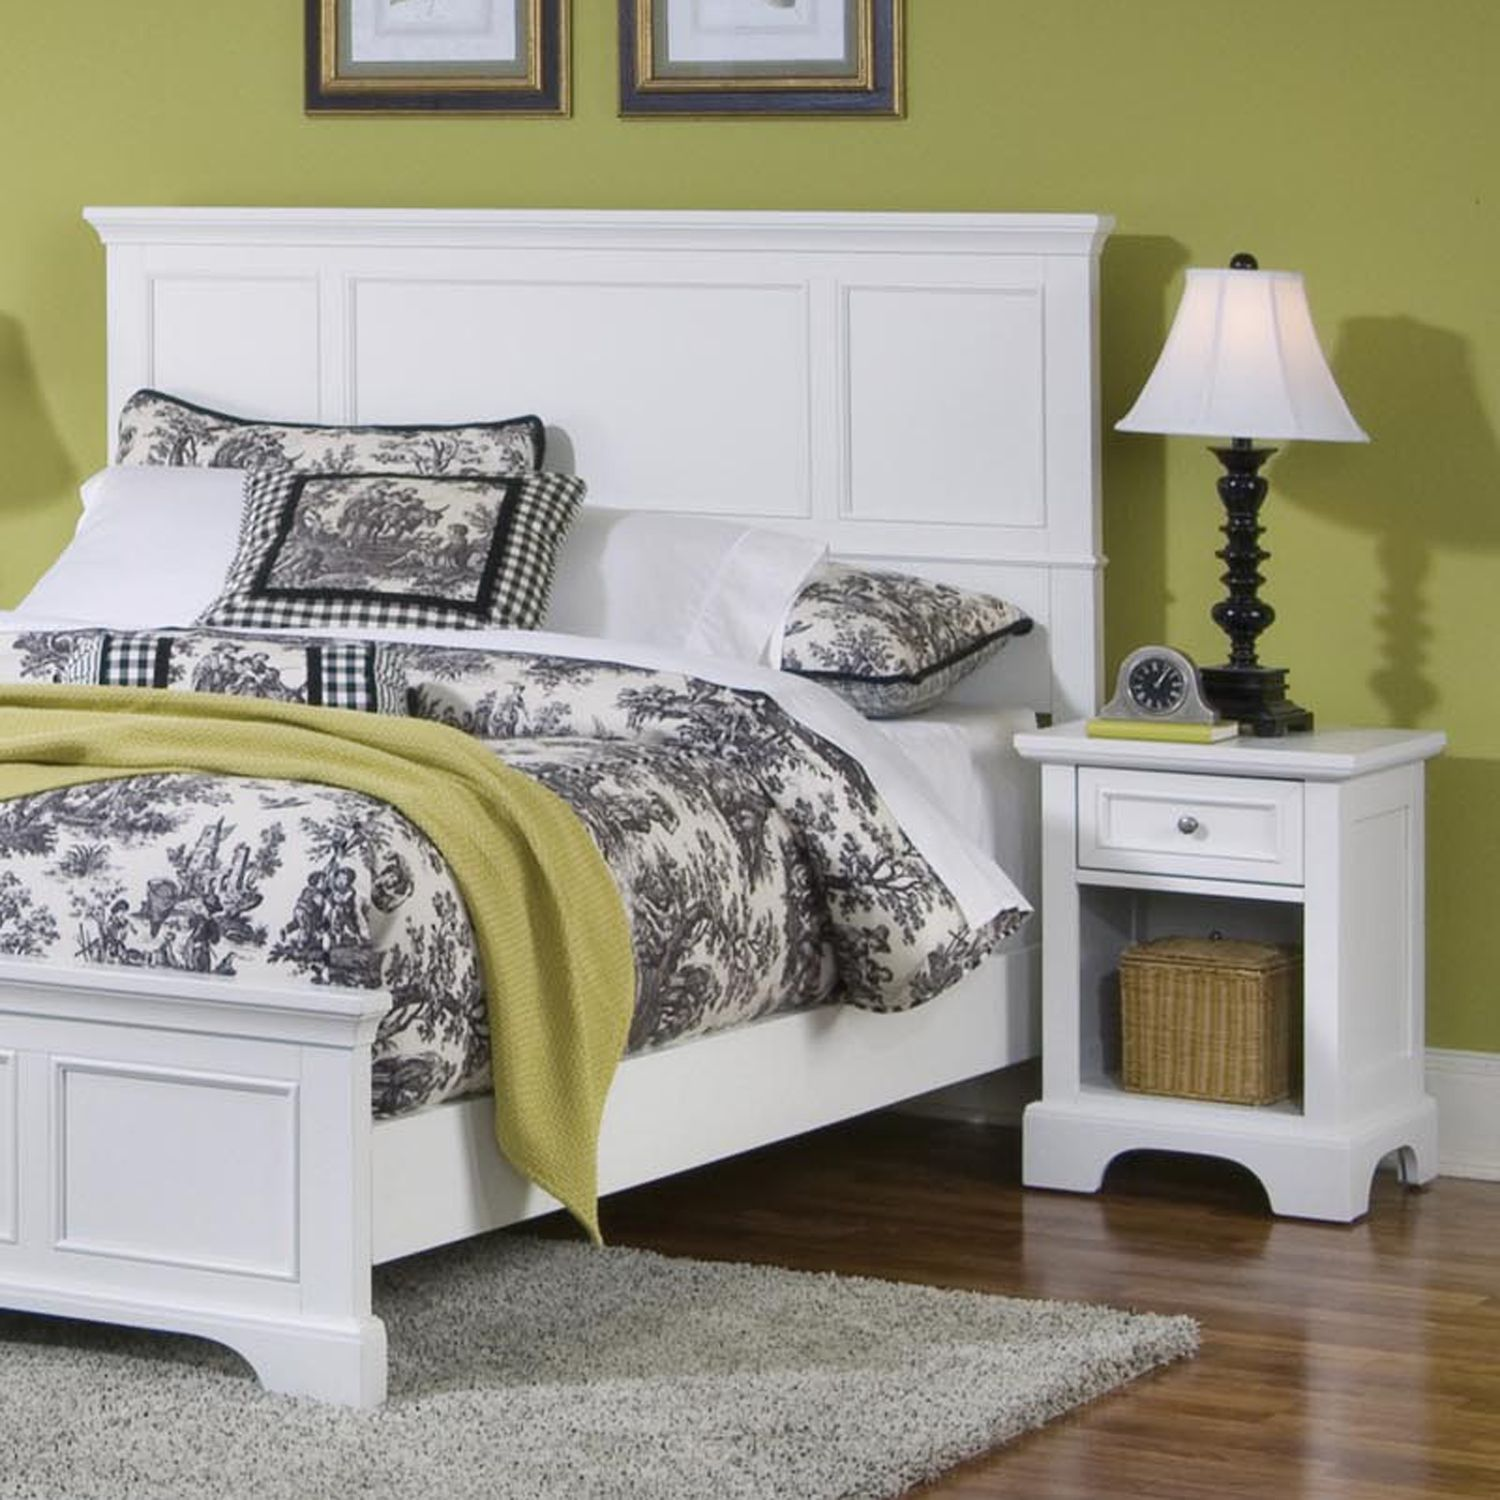 Spectacular Naples Queen Headboard u Nightstand